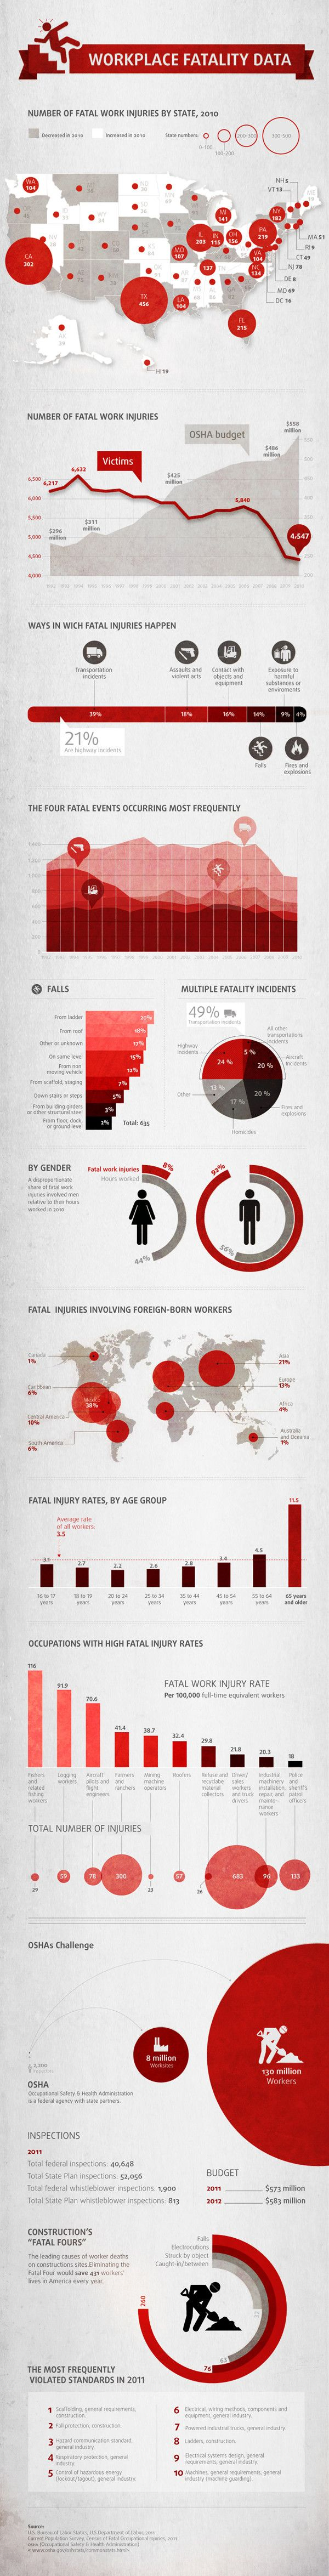 Infographic: The Deadliest Job Isn't What You Expect   Co.Design: business + innovation + design